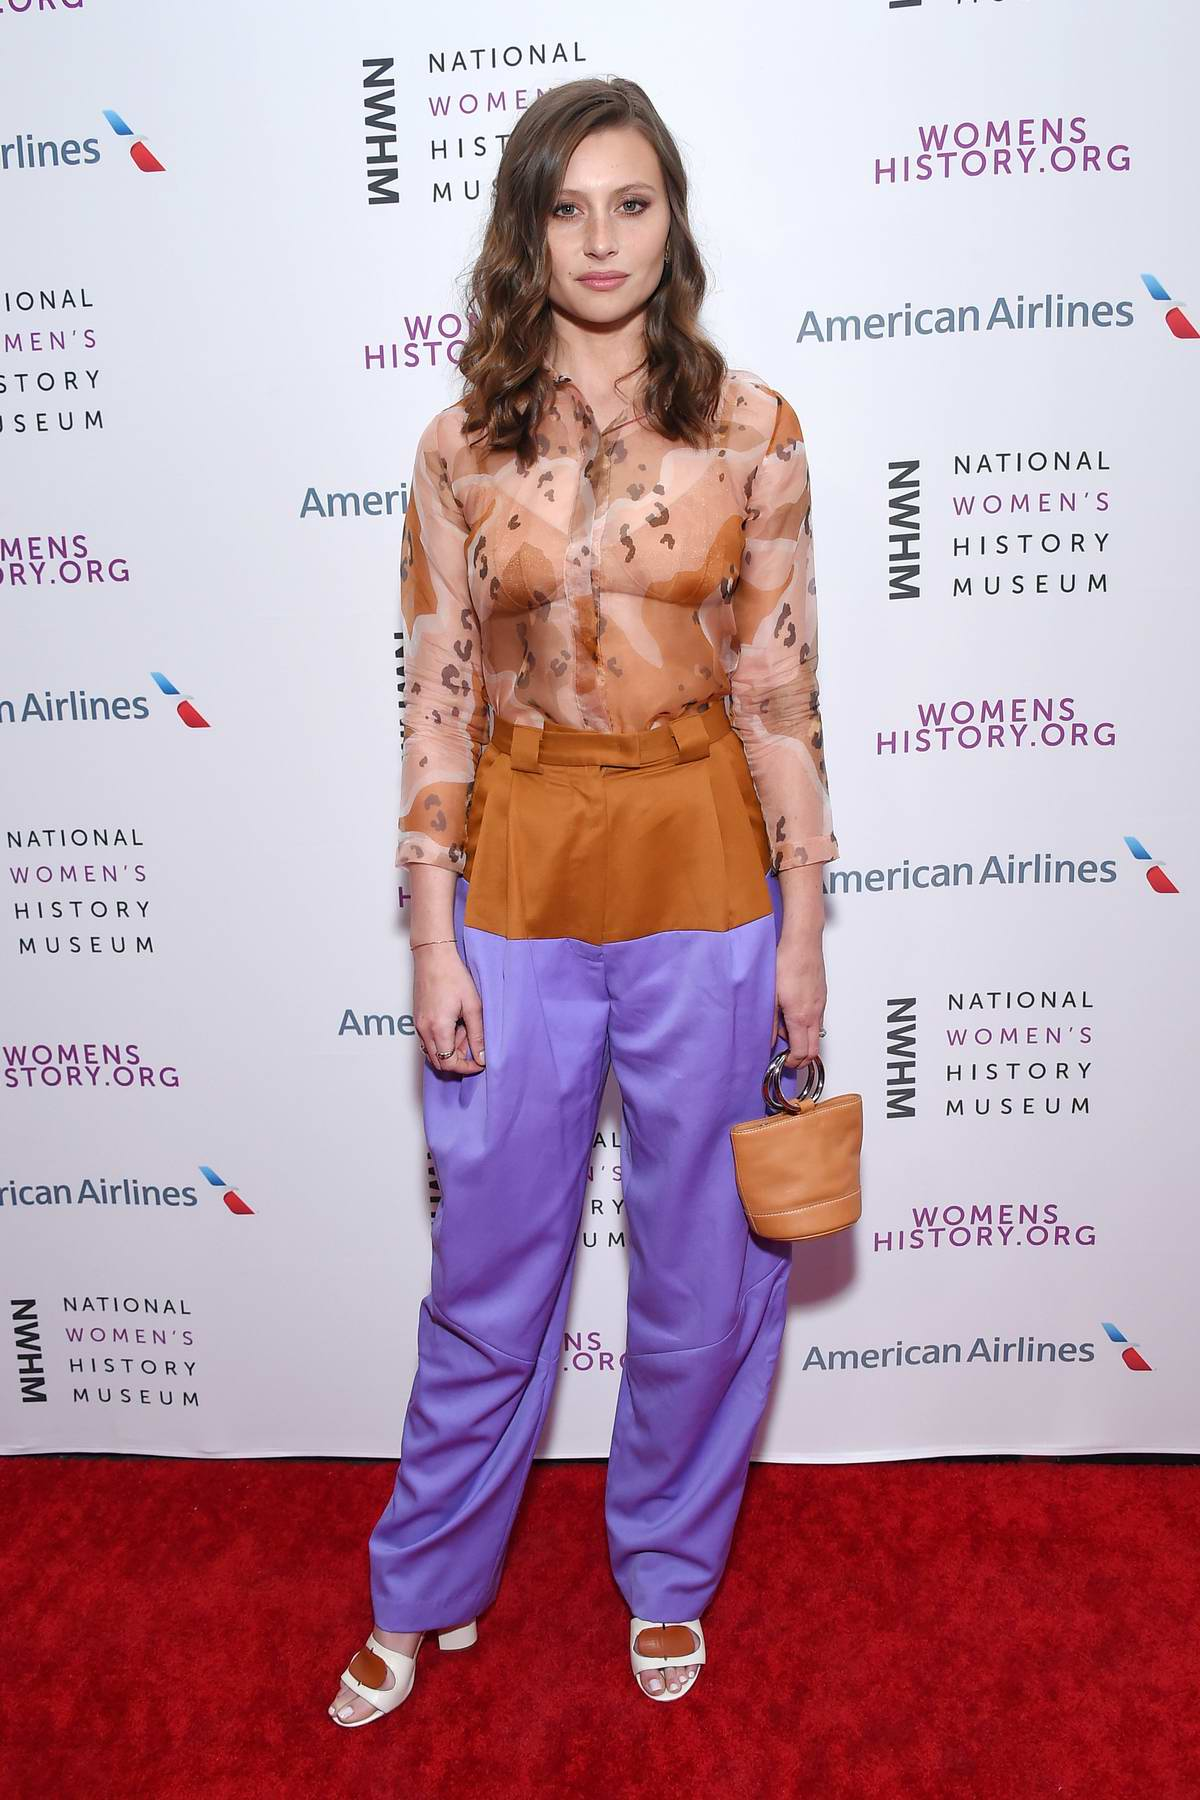 Aly Michalka attends the National Women's History Museum Women Making History Awards in Los Angeles